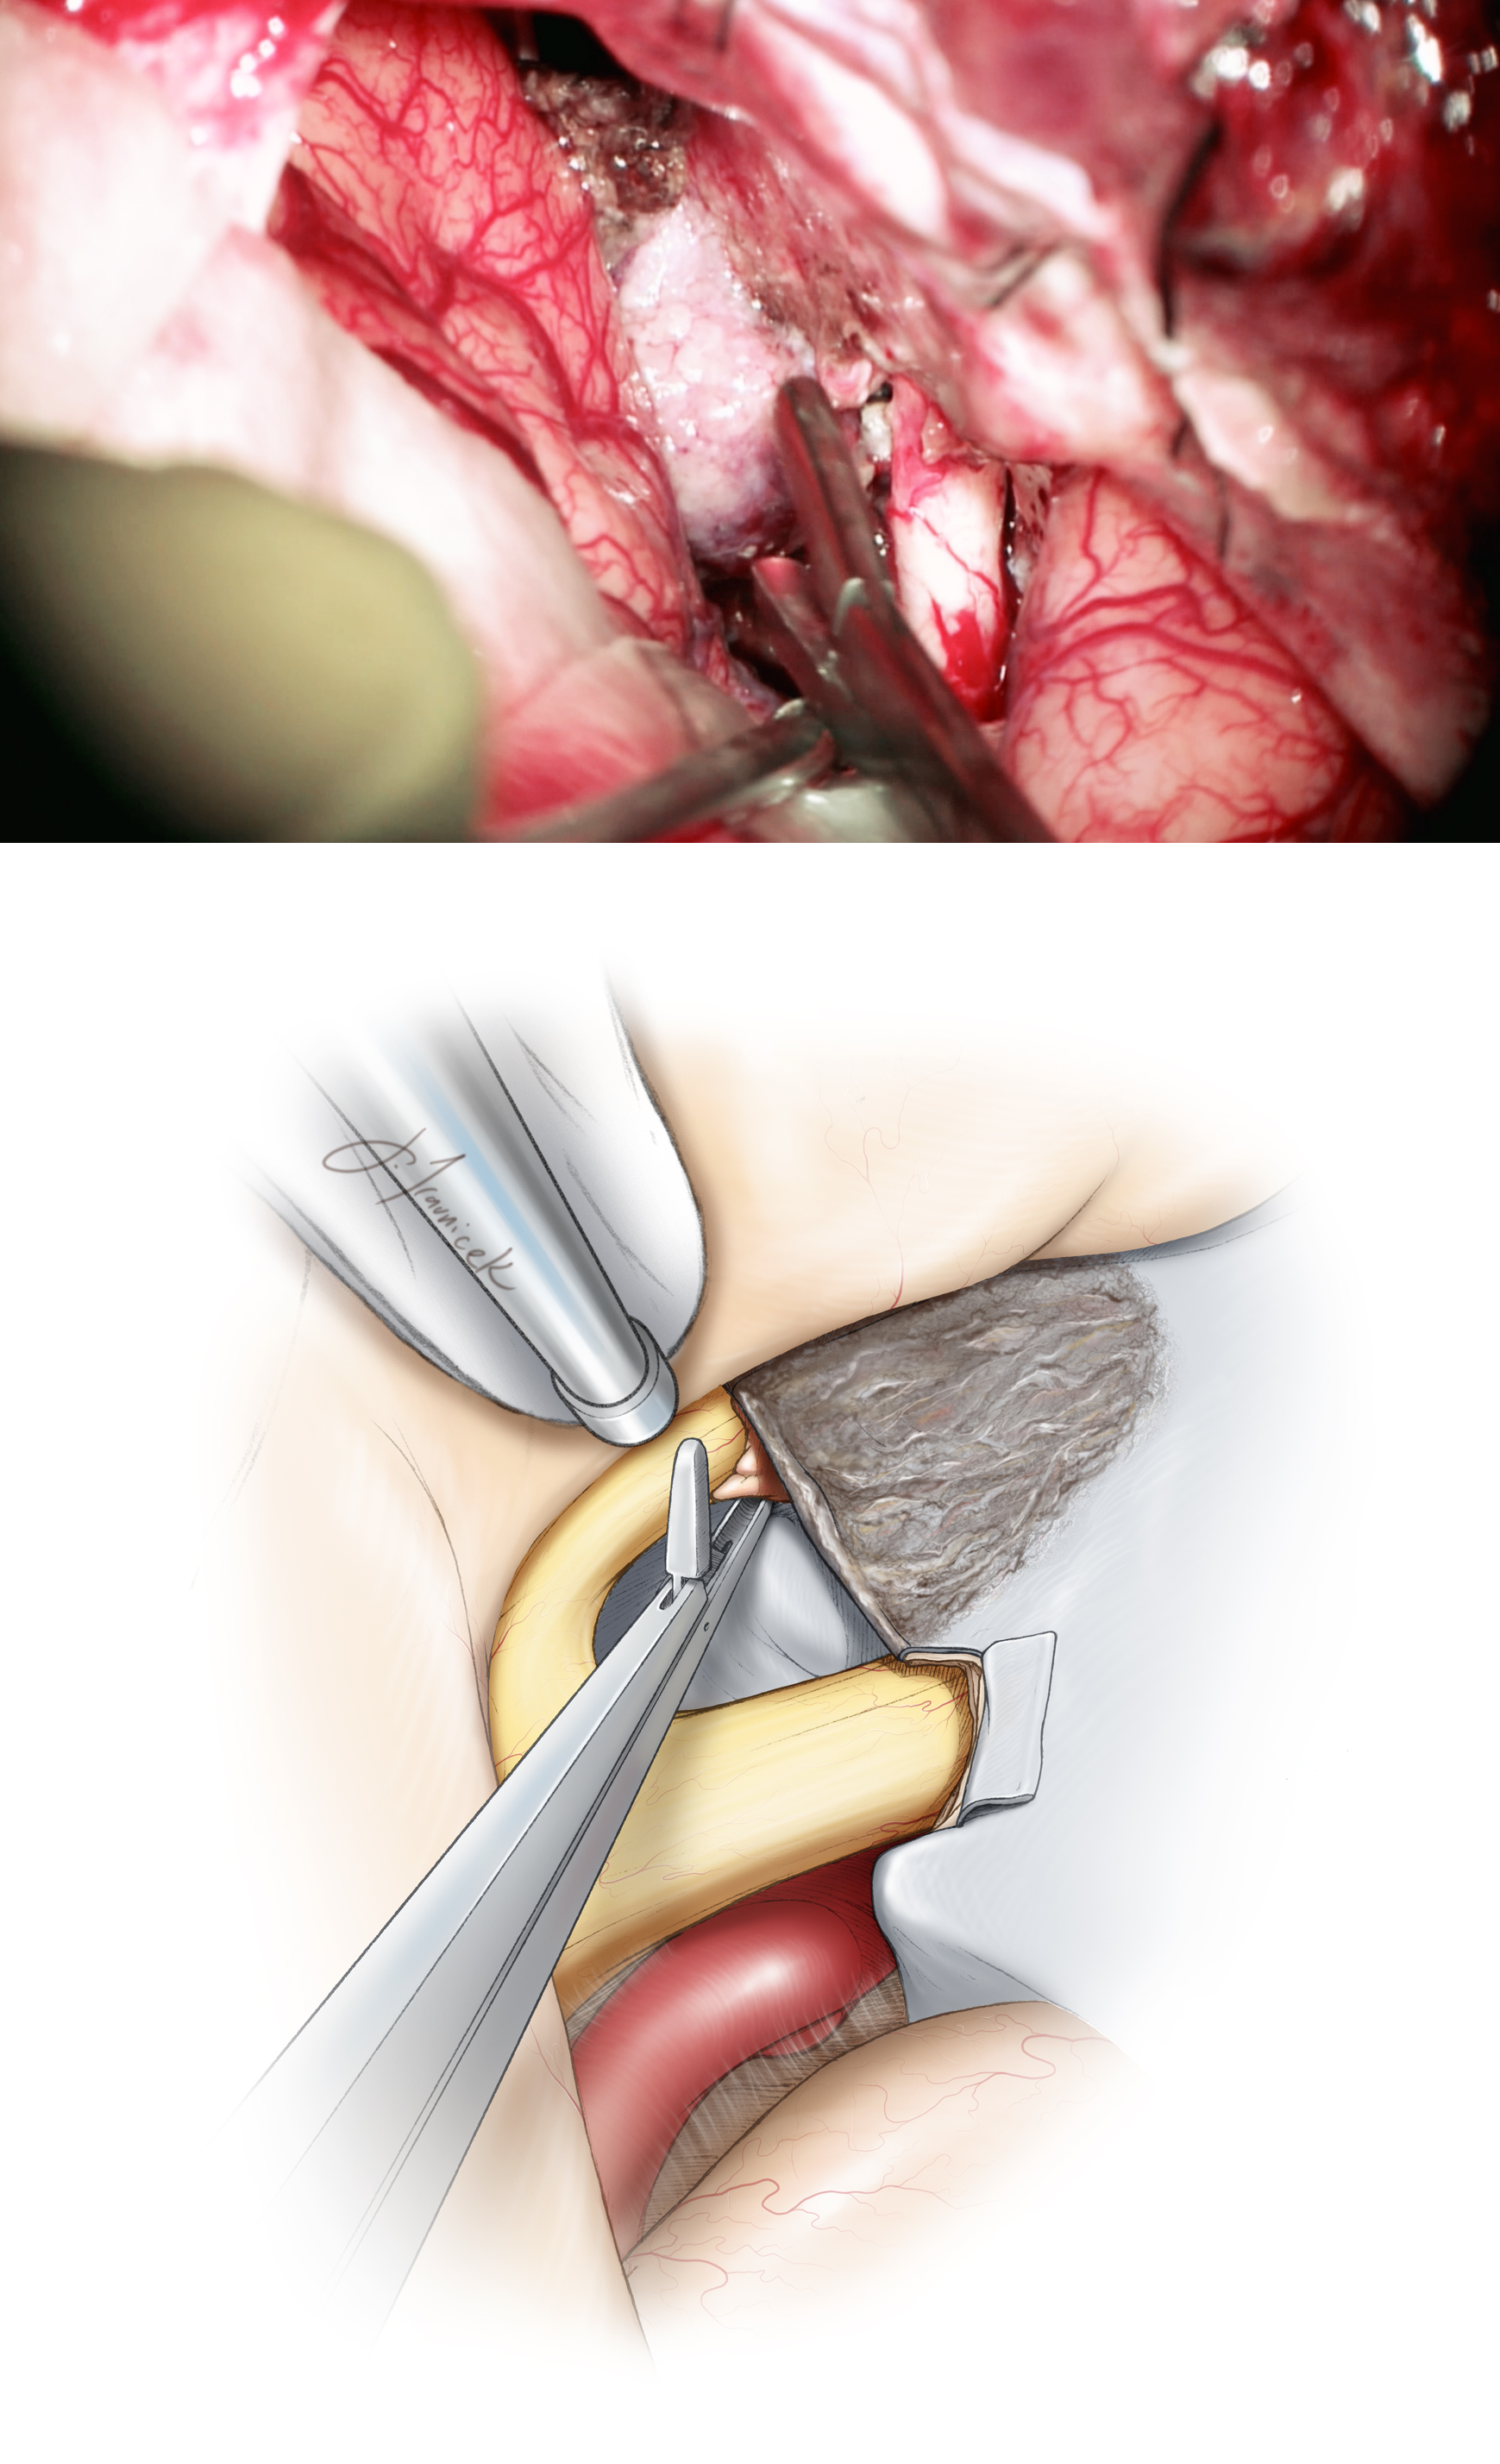 Figure 12: The bulk of the tumor is removed (upper photo). It is necessary to inspect both optic canals for presence of any residual or overlooked tumor. The medial aspect of the canal is most easily inspected along the contralateral optic nerve by using a cross-court approach (bottom illustration). Inadequate removal of the tumor may potentially account for delayed visual deterioration due to swelling of the residual tumor within the canal. The intracanalicular components of the tumor are typically nonadherent and can be dislodged using fine pituitary rongeurs.